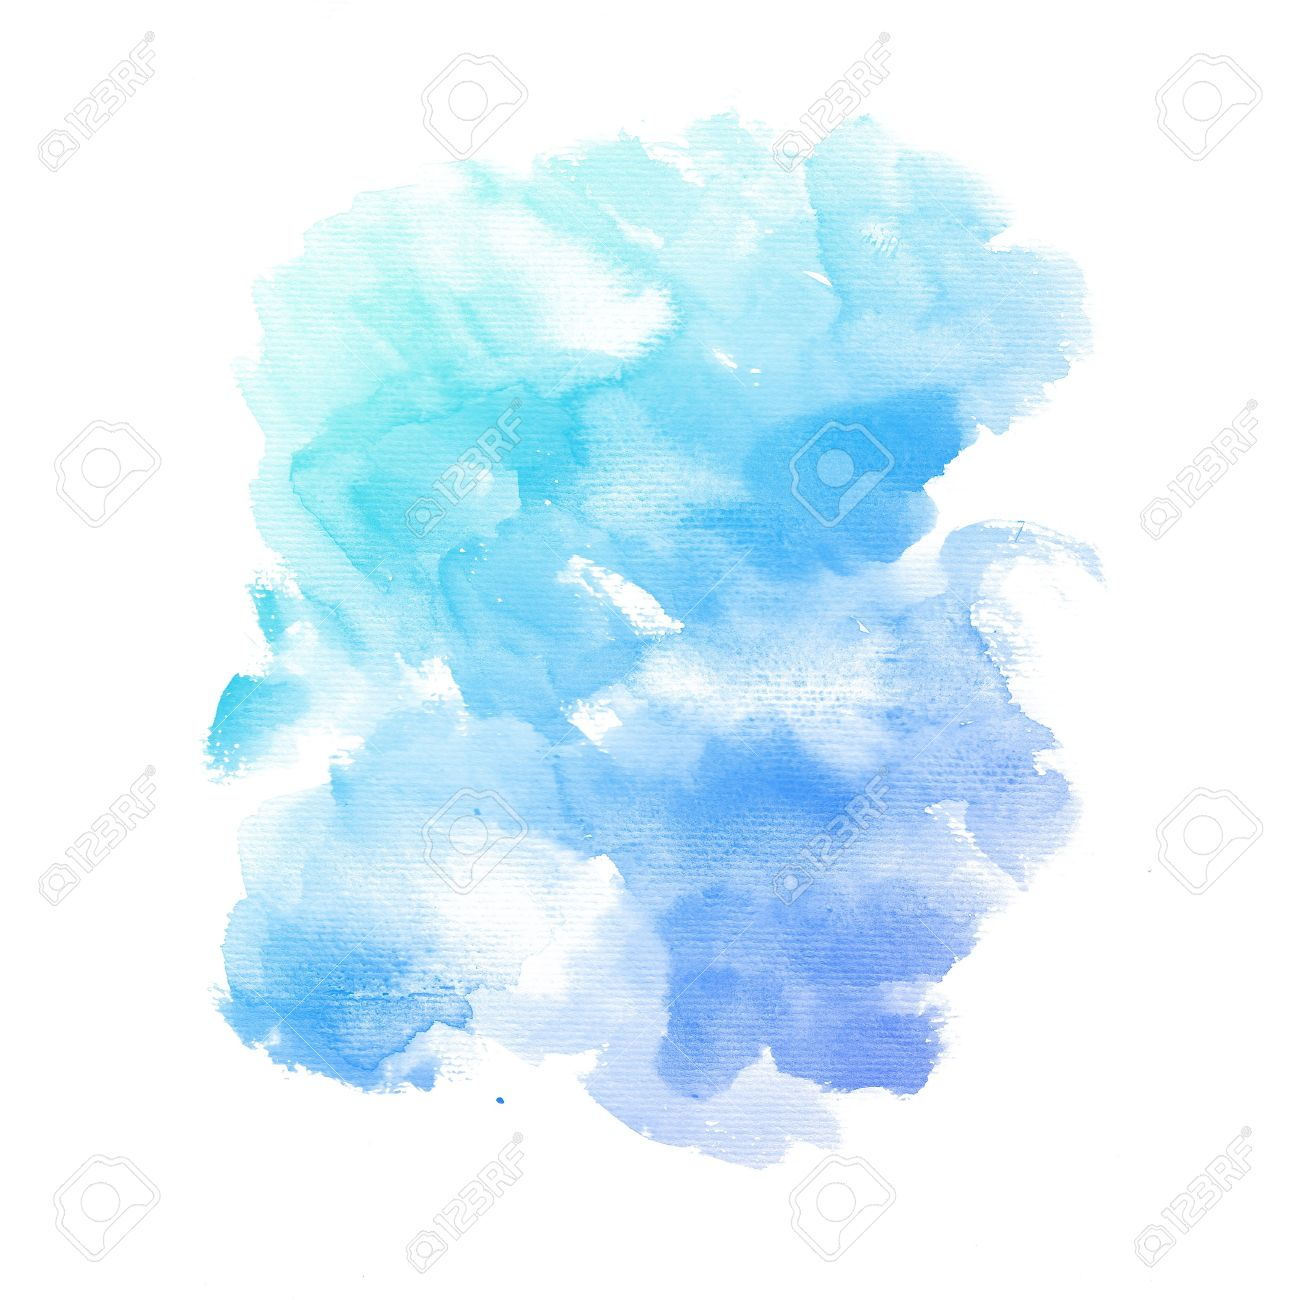 Watercolor background  colorful Abstract water color art hand paint Stock Photo - 20136400